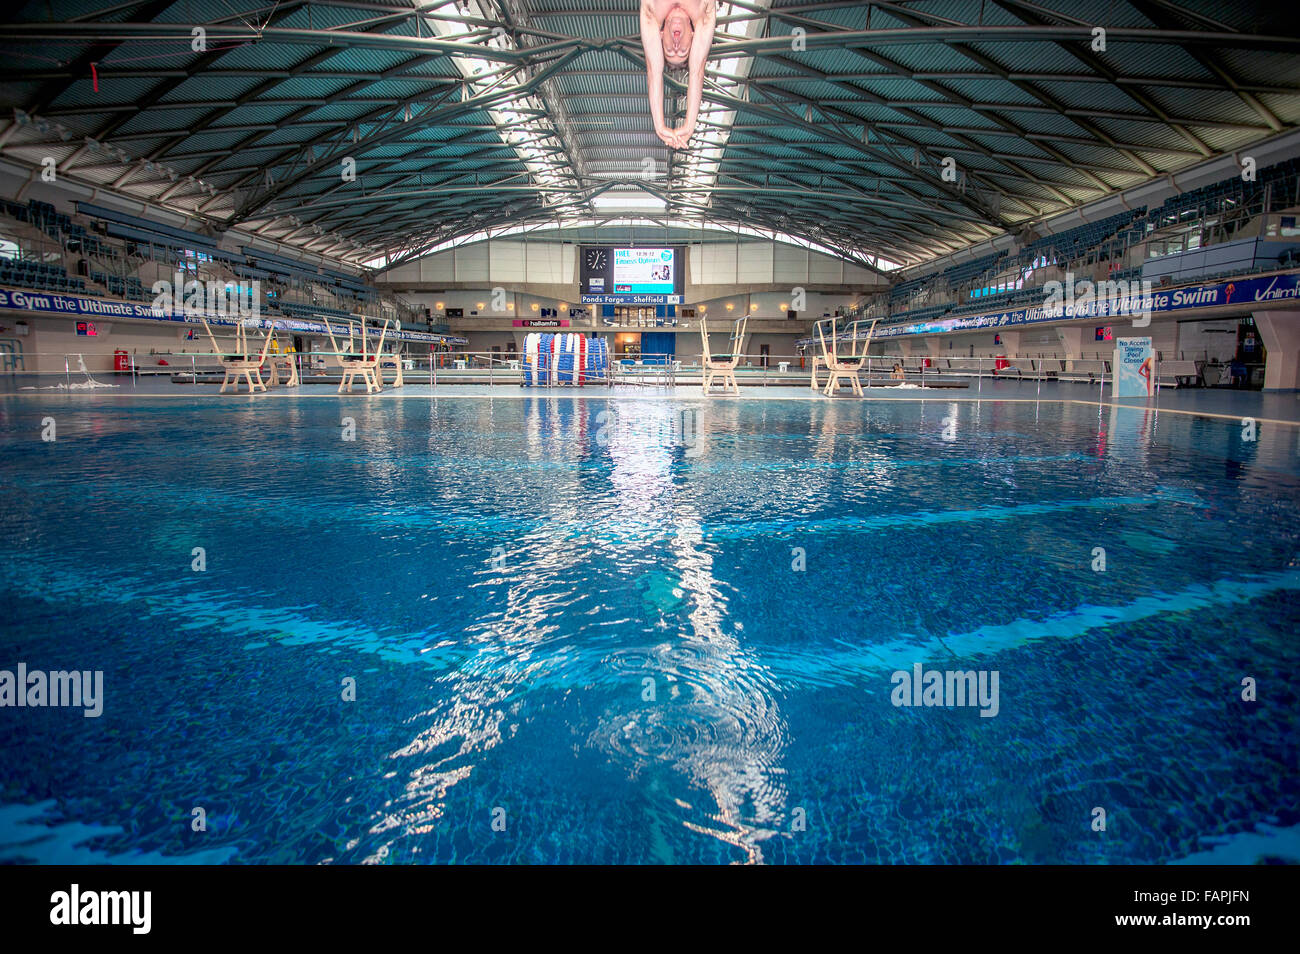 Diving at Ponds Forge in Sheffield, England, UK. - Stock Image